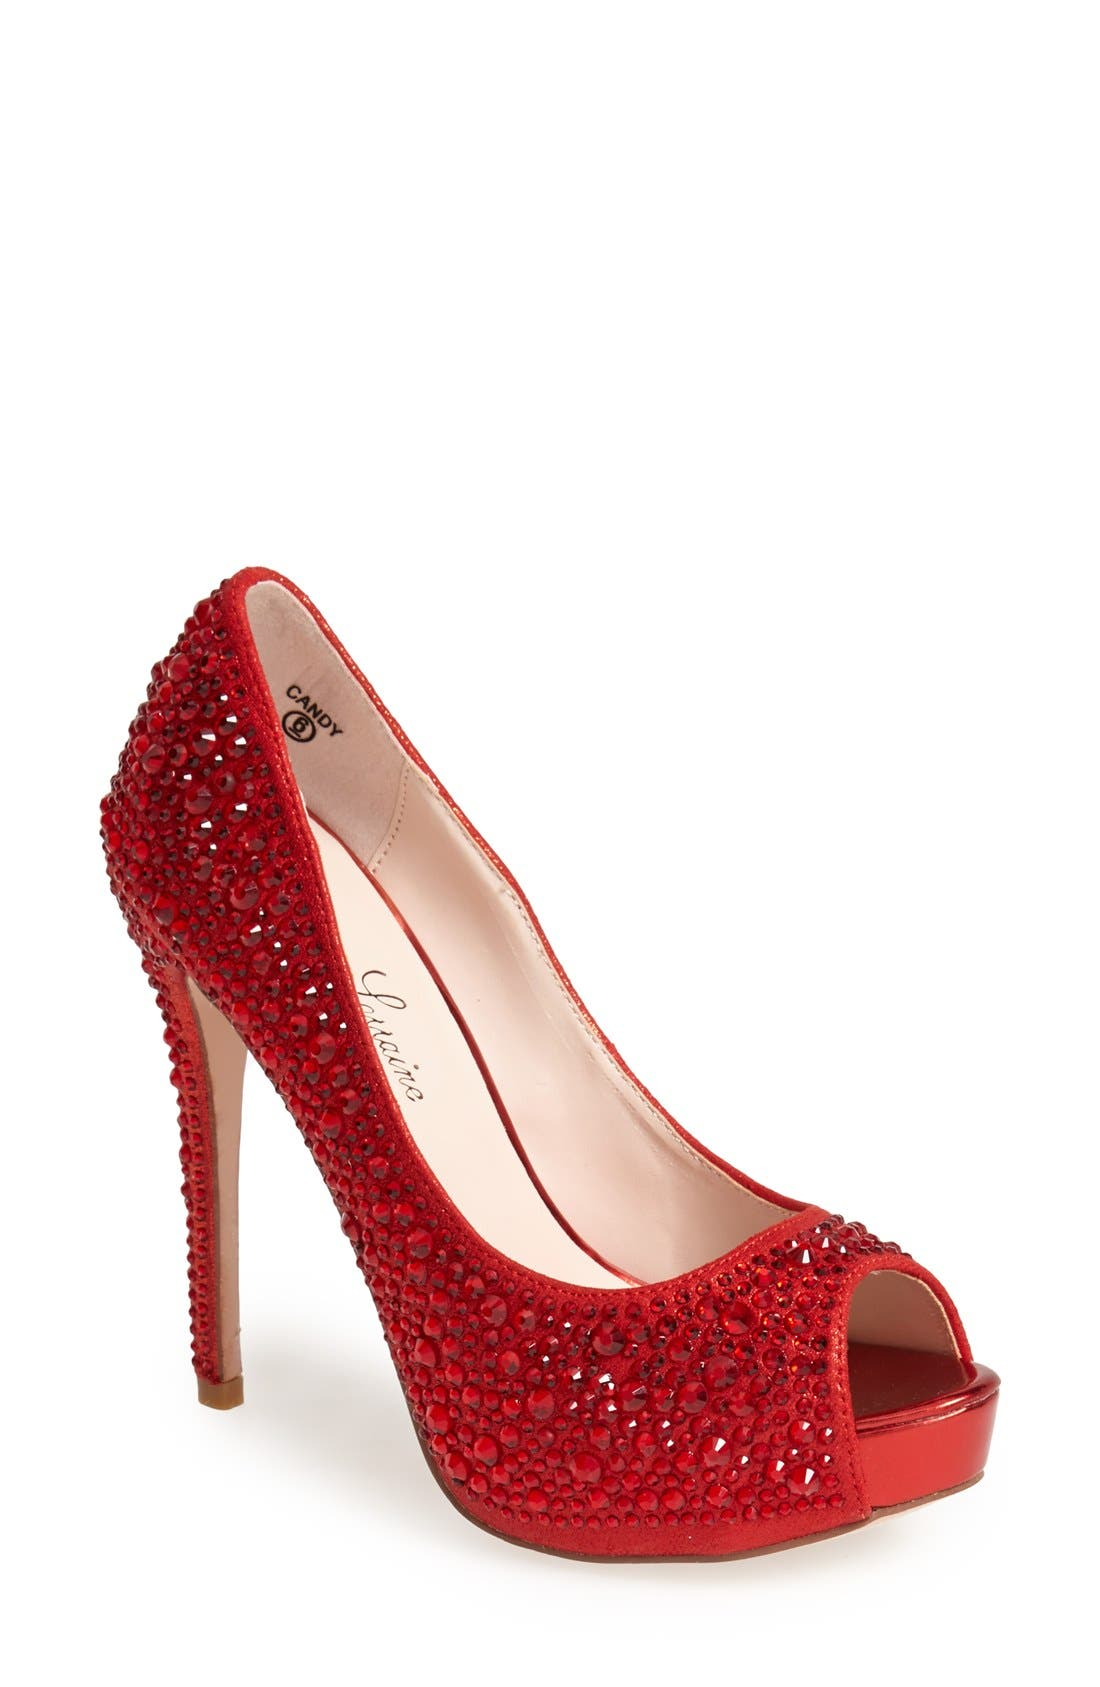 'Candy' Crystal Peep Toe Pump,                         Main,                         color, Red